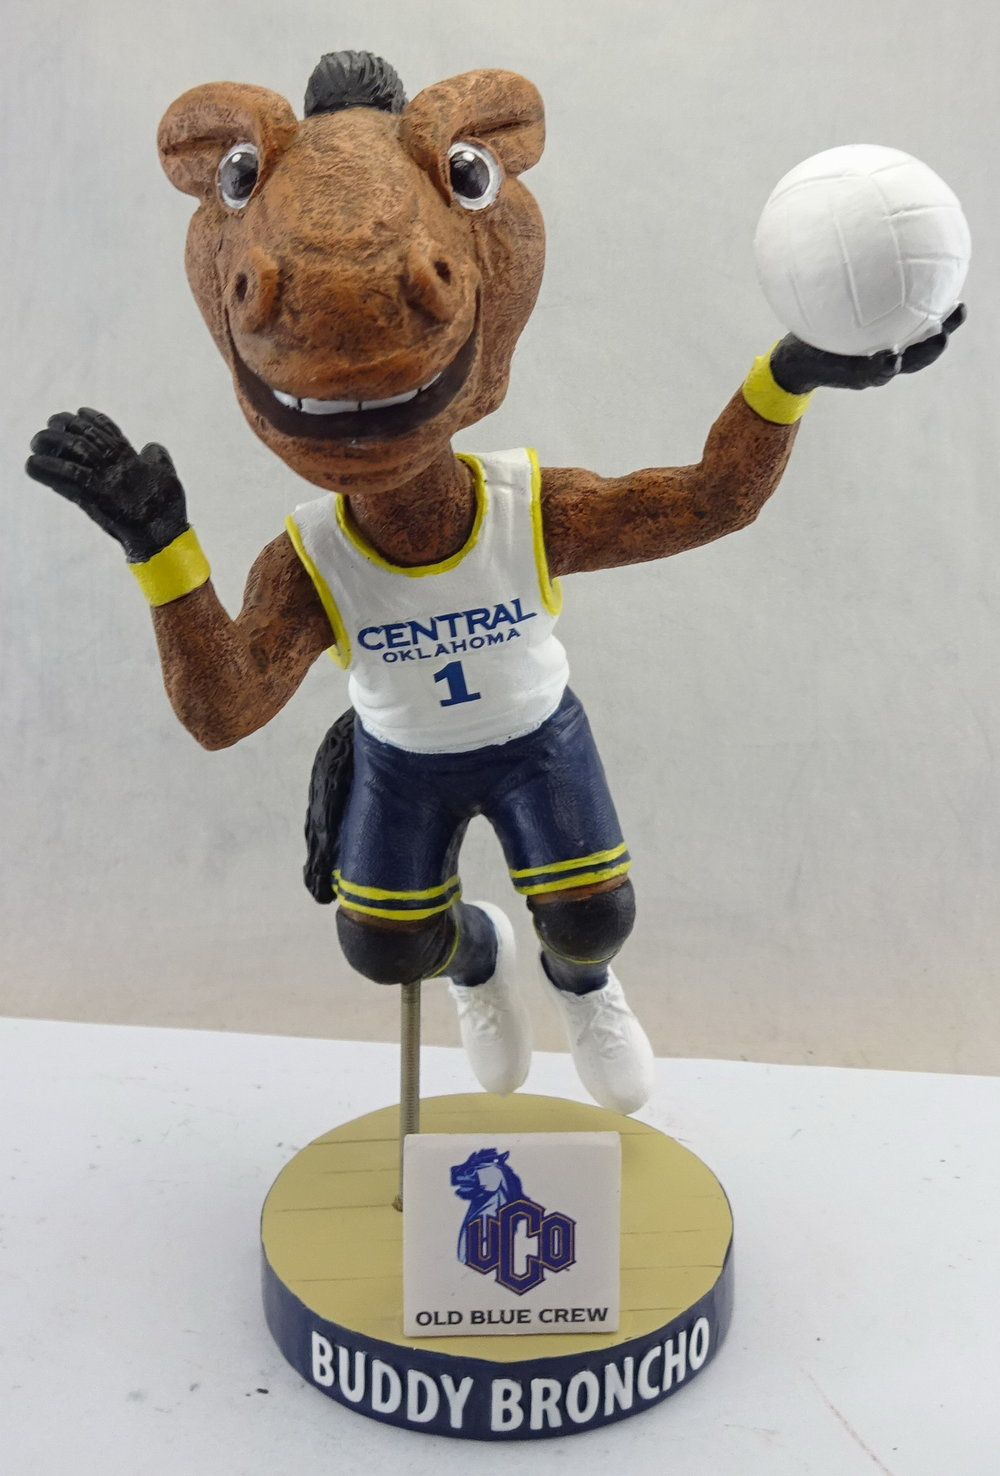 University of Central Oklahoma - Buddy Volleyball 112949, 7in Bobblehead (1).jpg